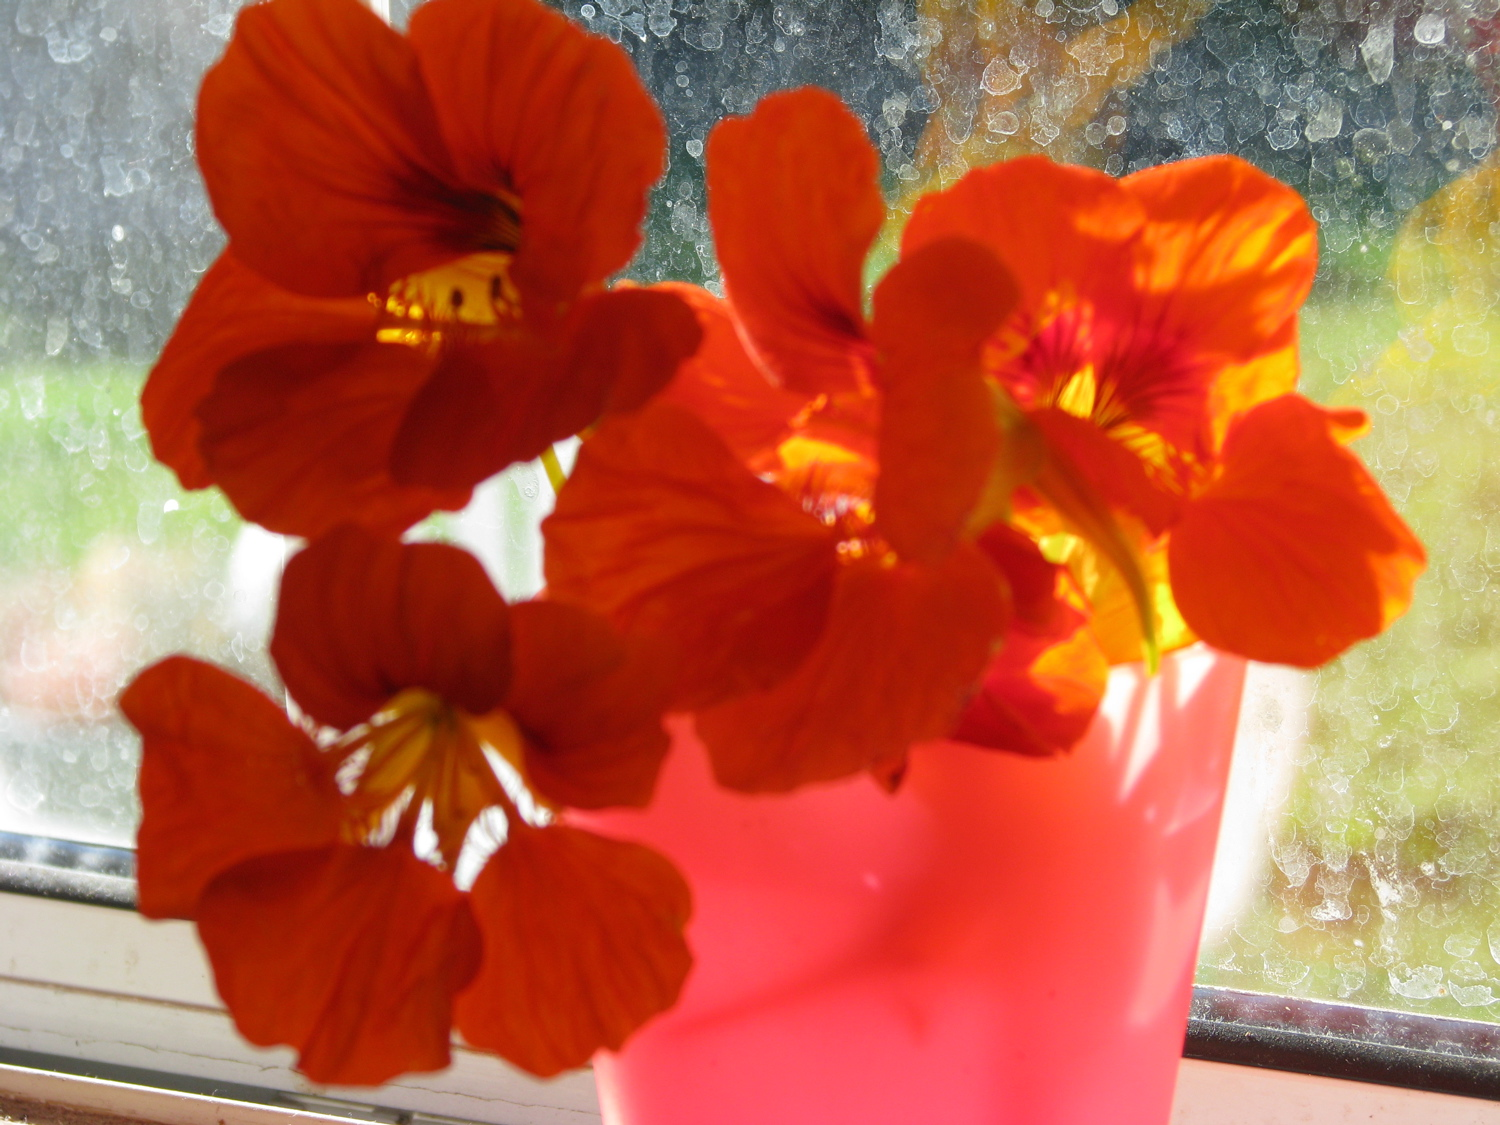 nasturtiums in a red cup